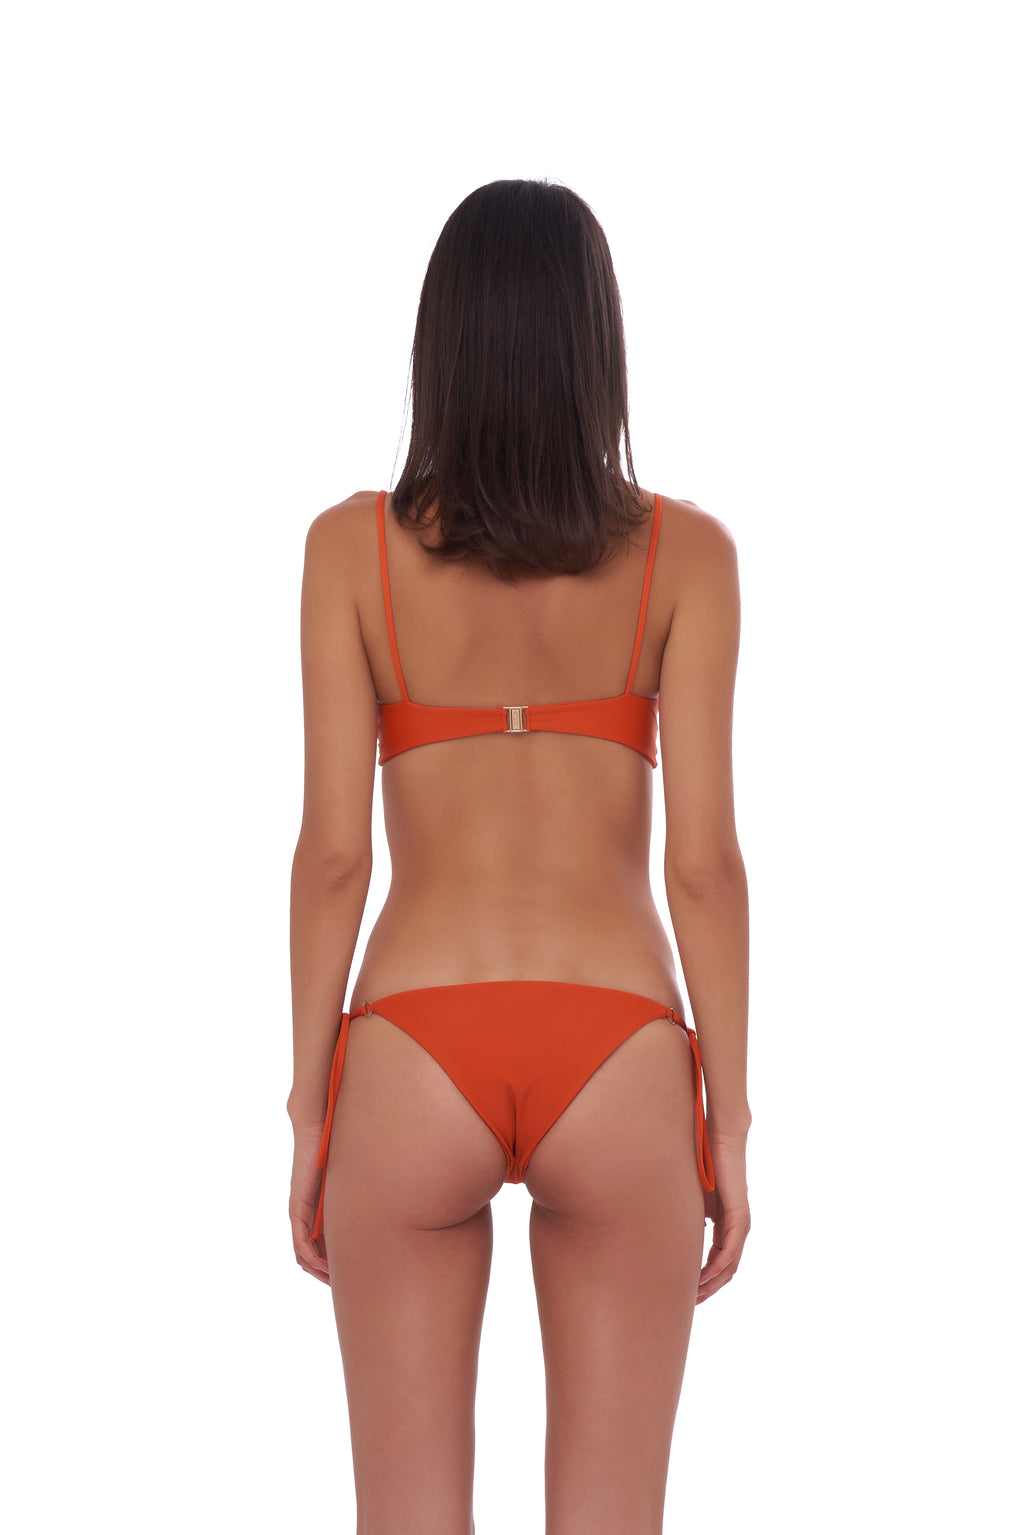 Storm Swimwear - Corfu - Tie Side with Ring Bikini Brief in Sunburnt Orange